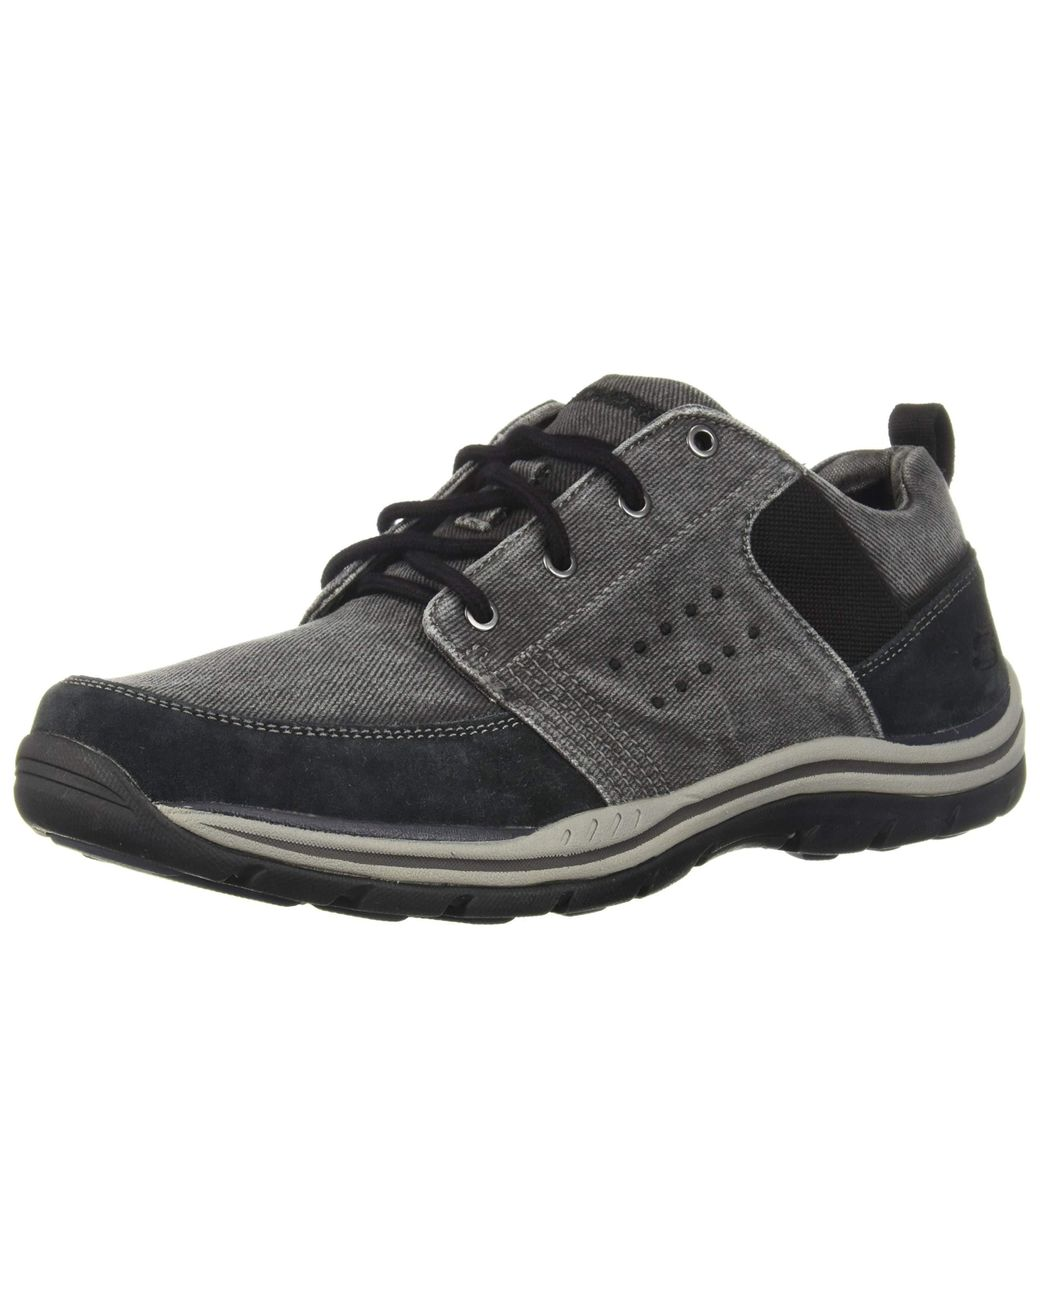 Skechers Canvas S 65765 Expected